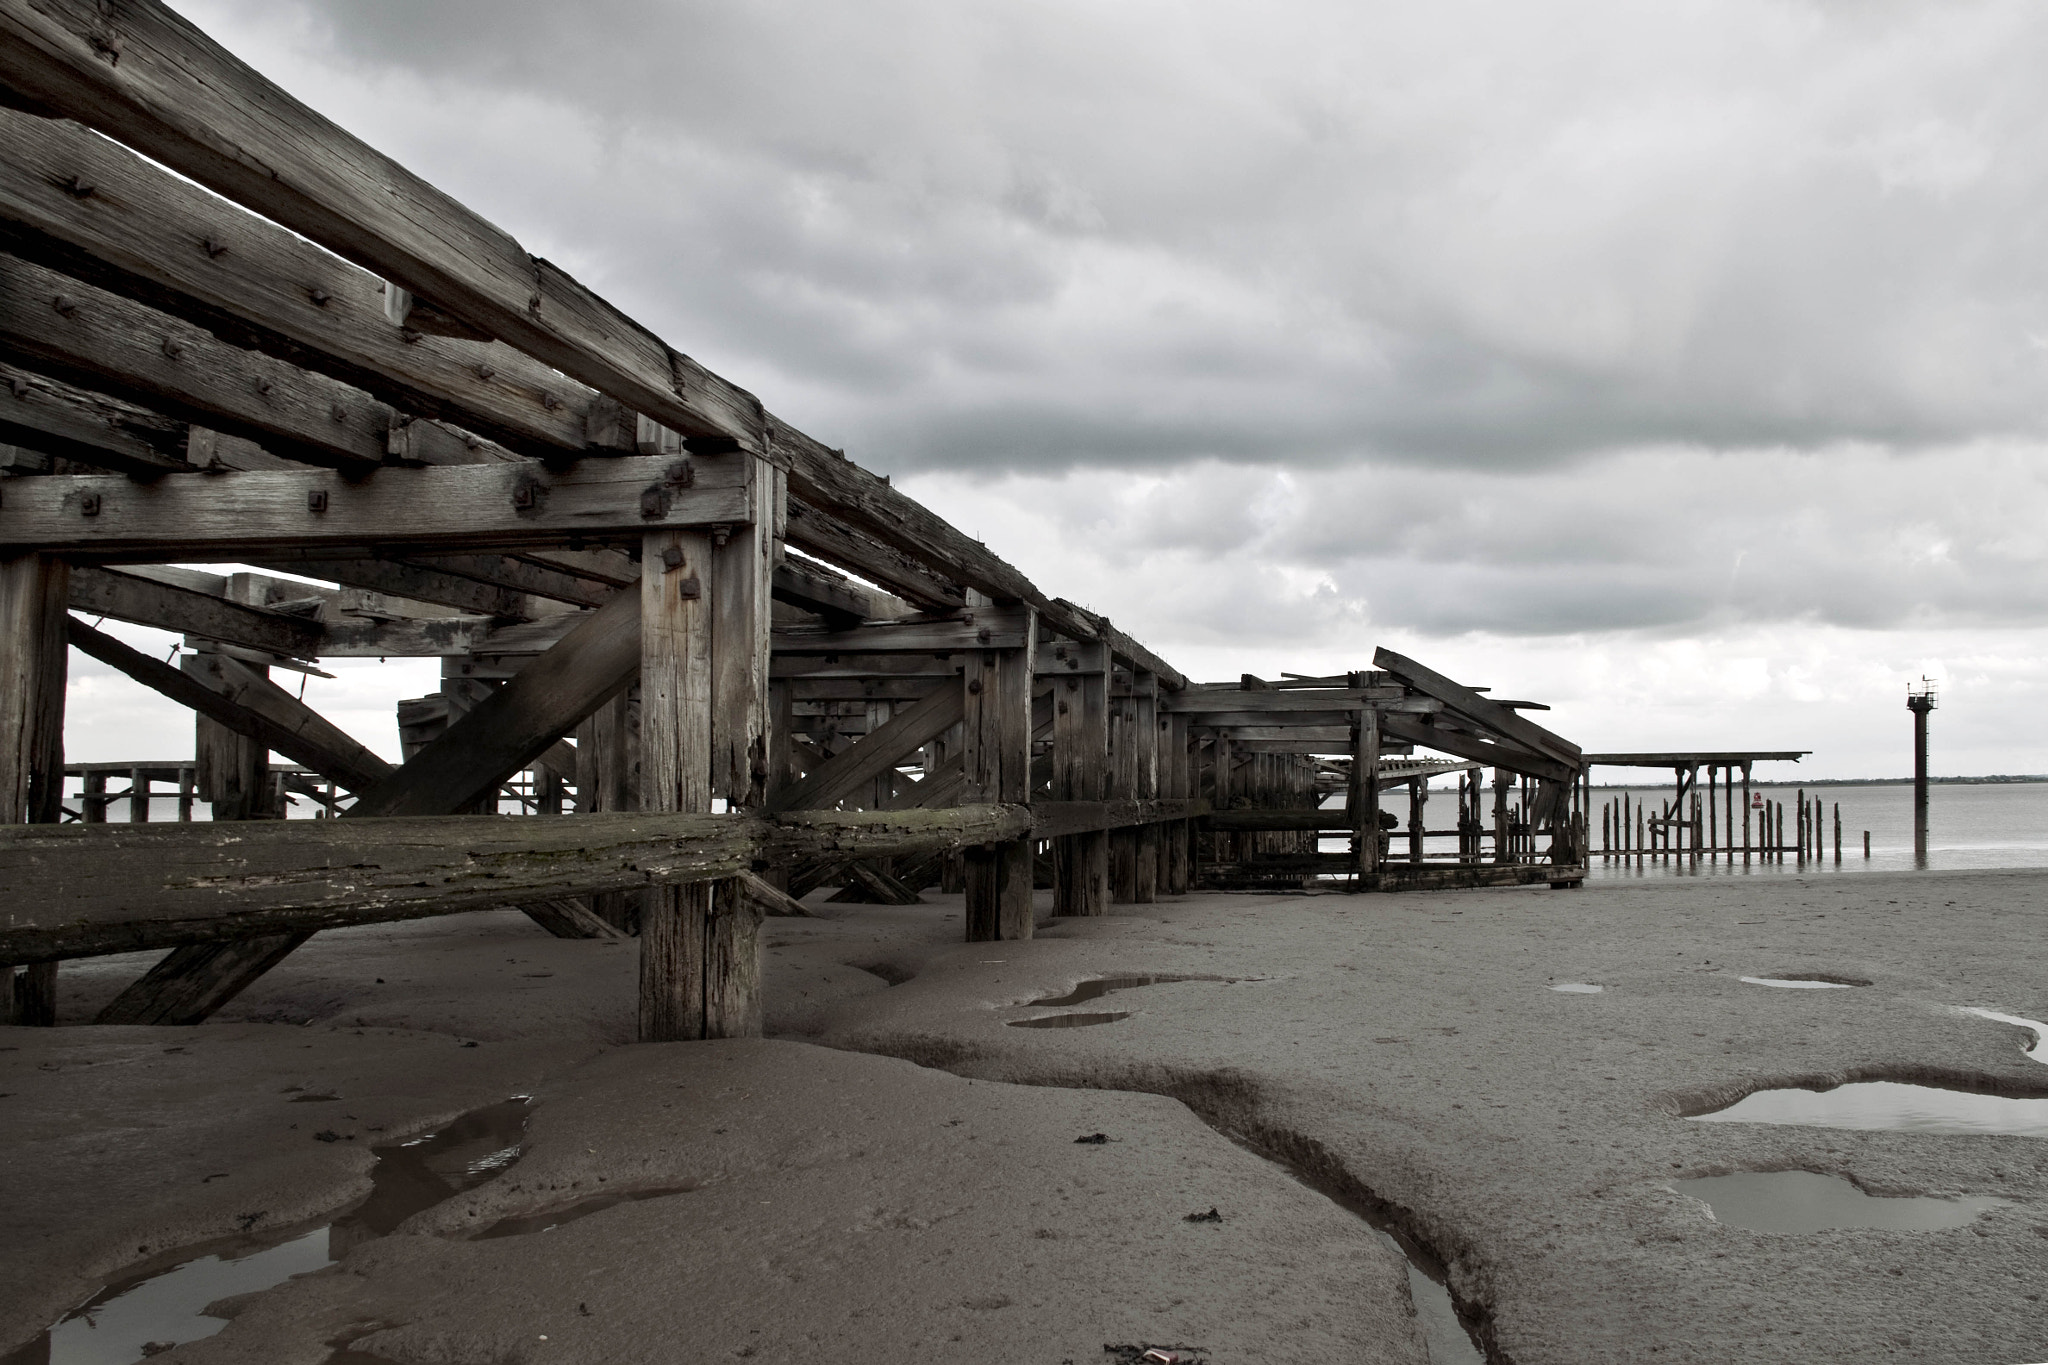 Photograph Old docks on the Humber by monapixel on 500px